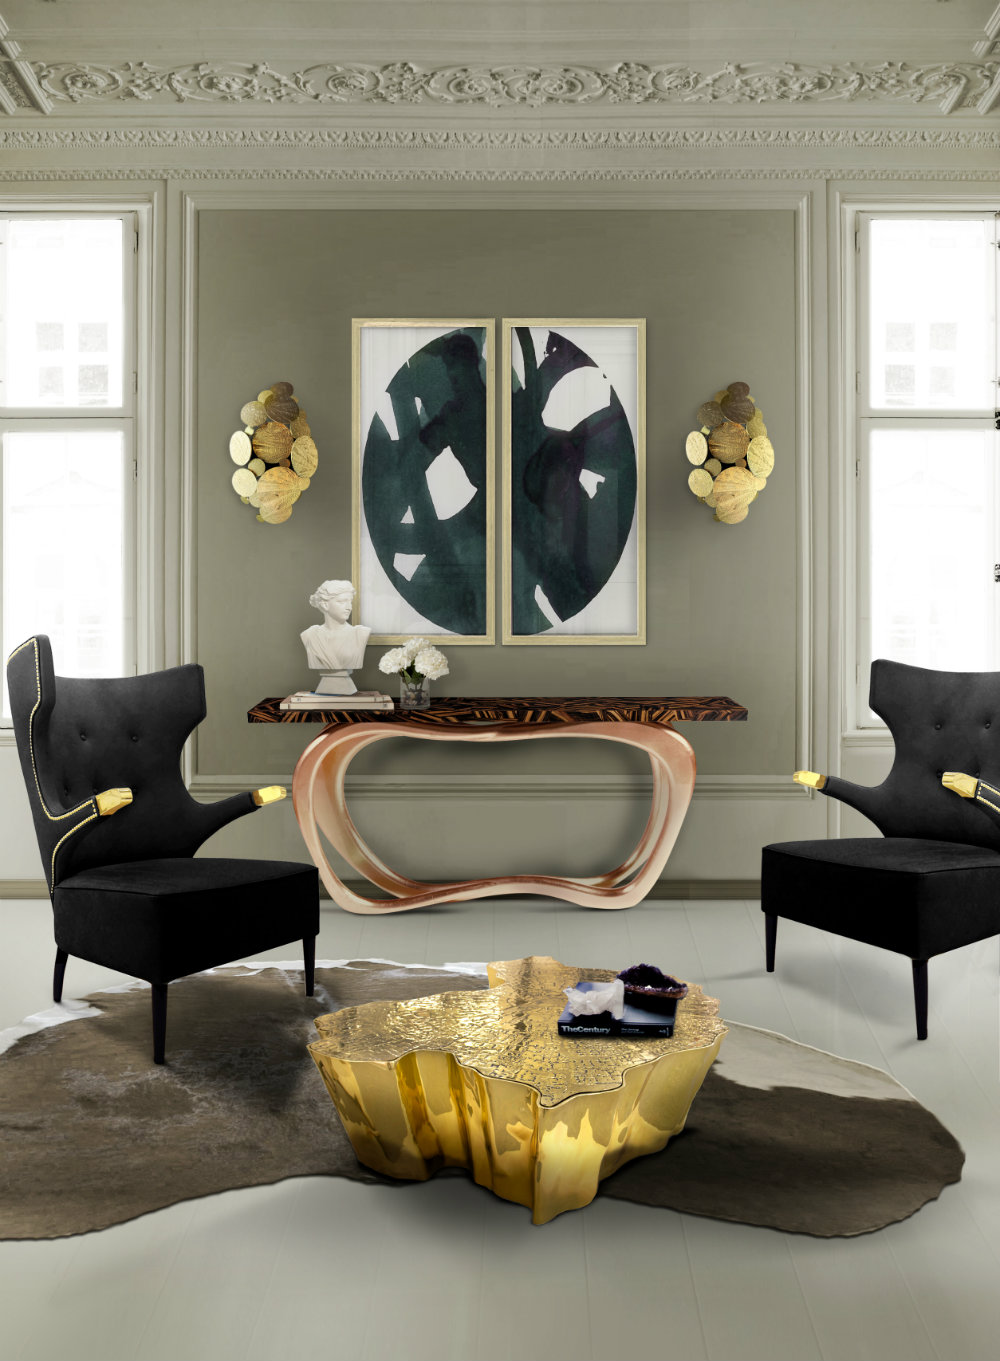 Have a look at Boca do Lobo's top trends for 2019 top trends Have a look at Boca do Lobo's top trends for 2019 BL Living Room one